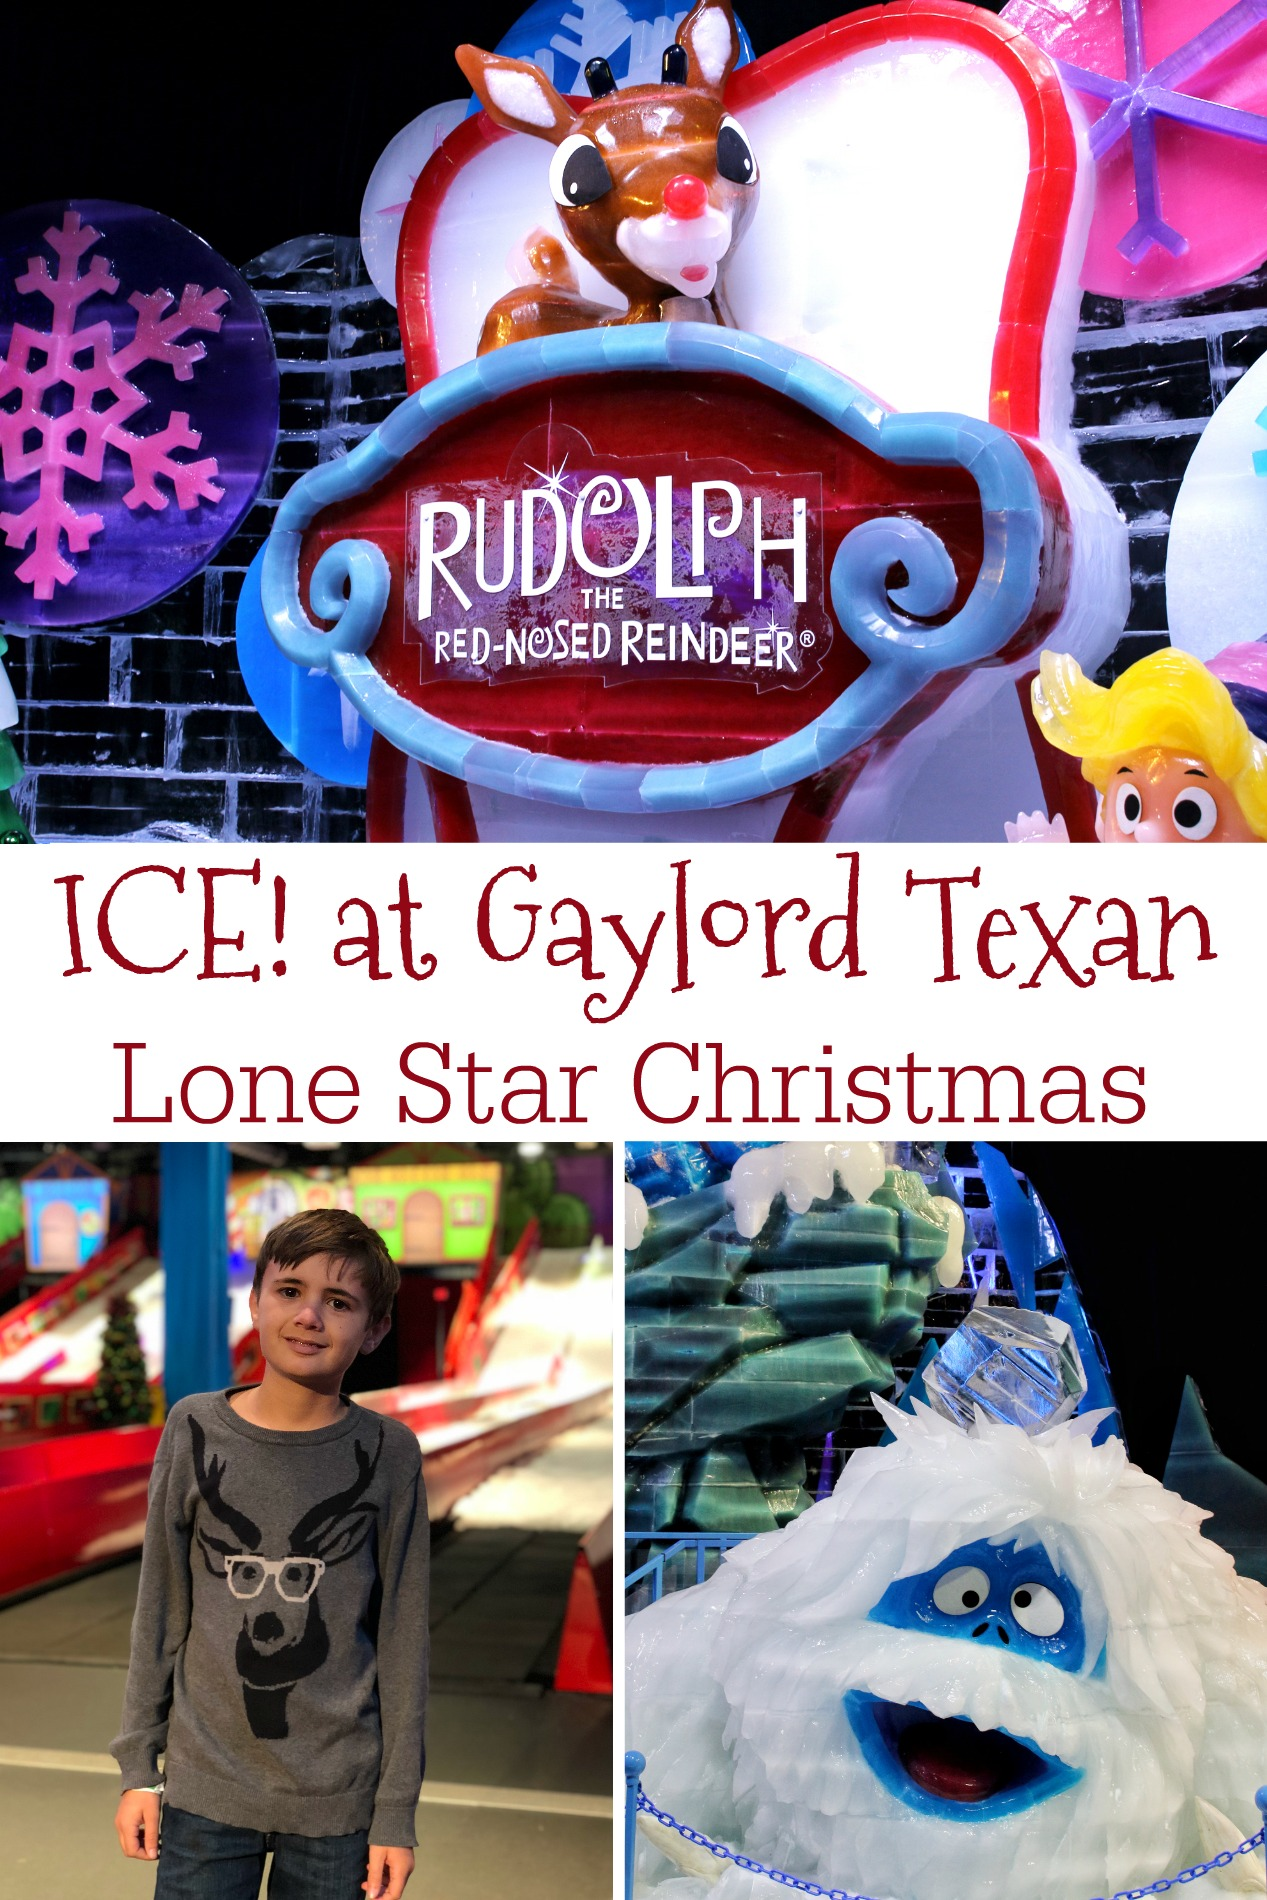 Ice at Gaylord Texan